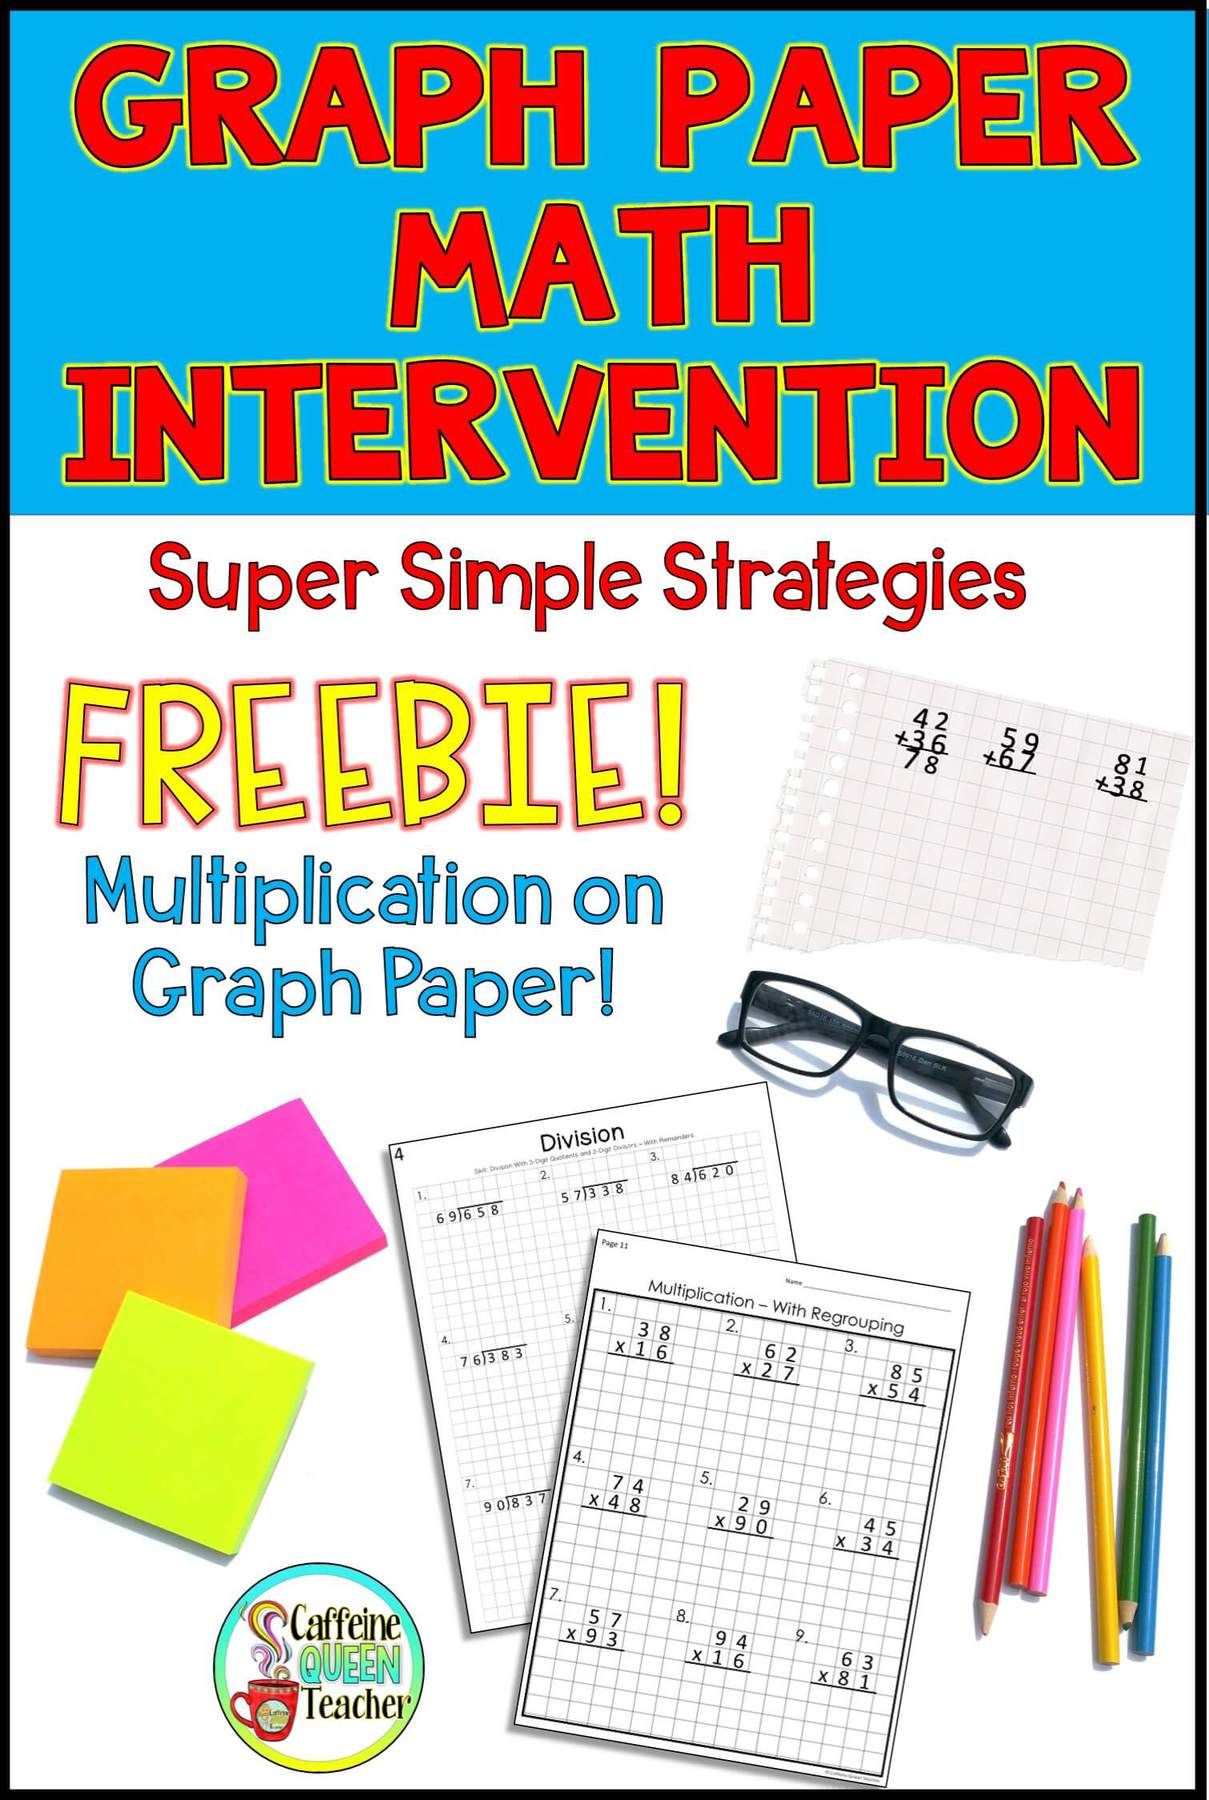 photograph about Cubes Math Strategy Printable titled Graph Paper Math Intervention - Caffeine Queen Trainer